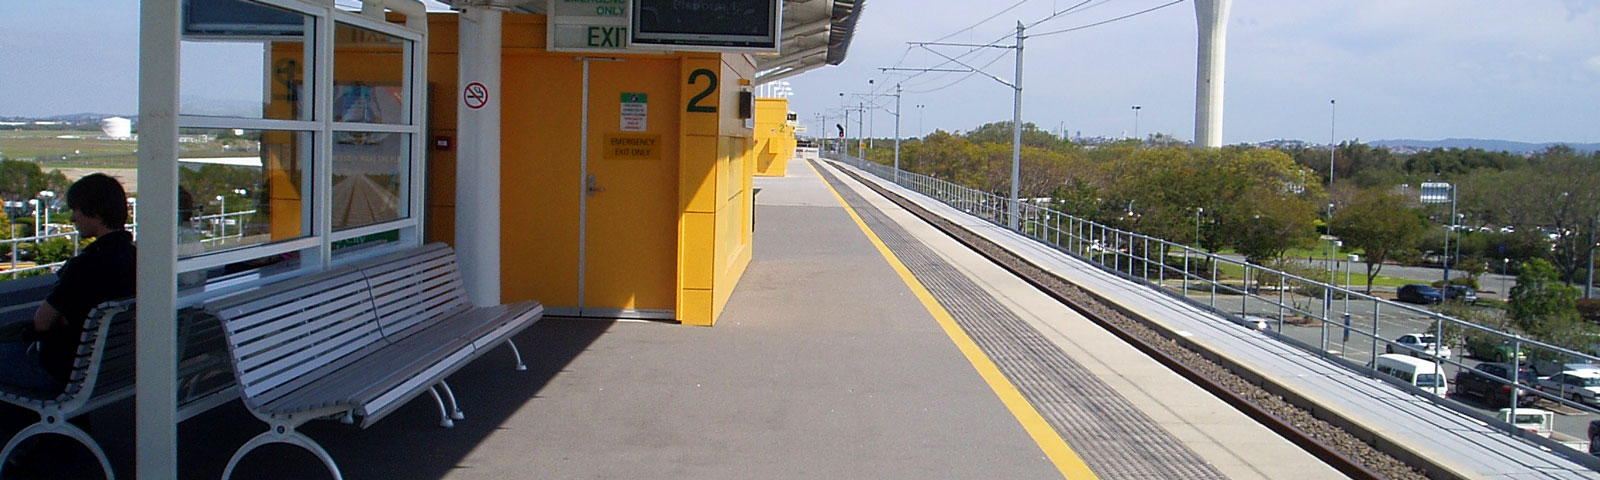 Train Station and Public Anti-Slip and Safety Floors